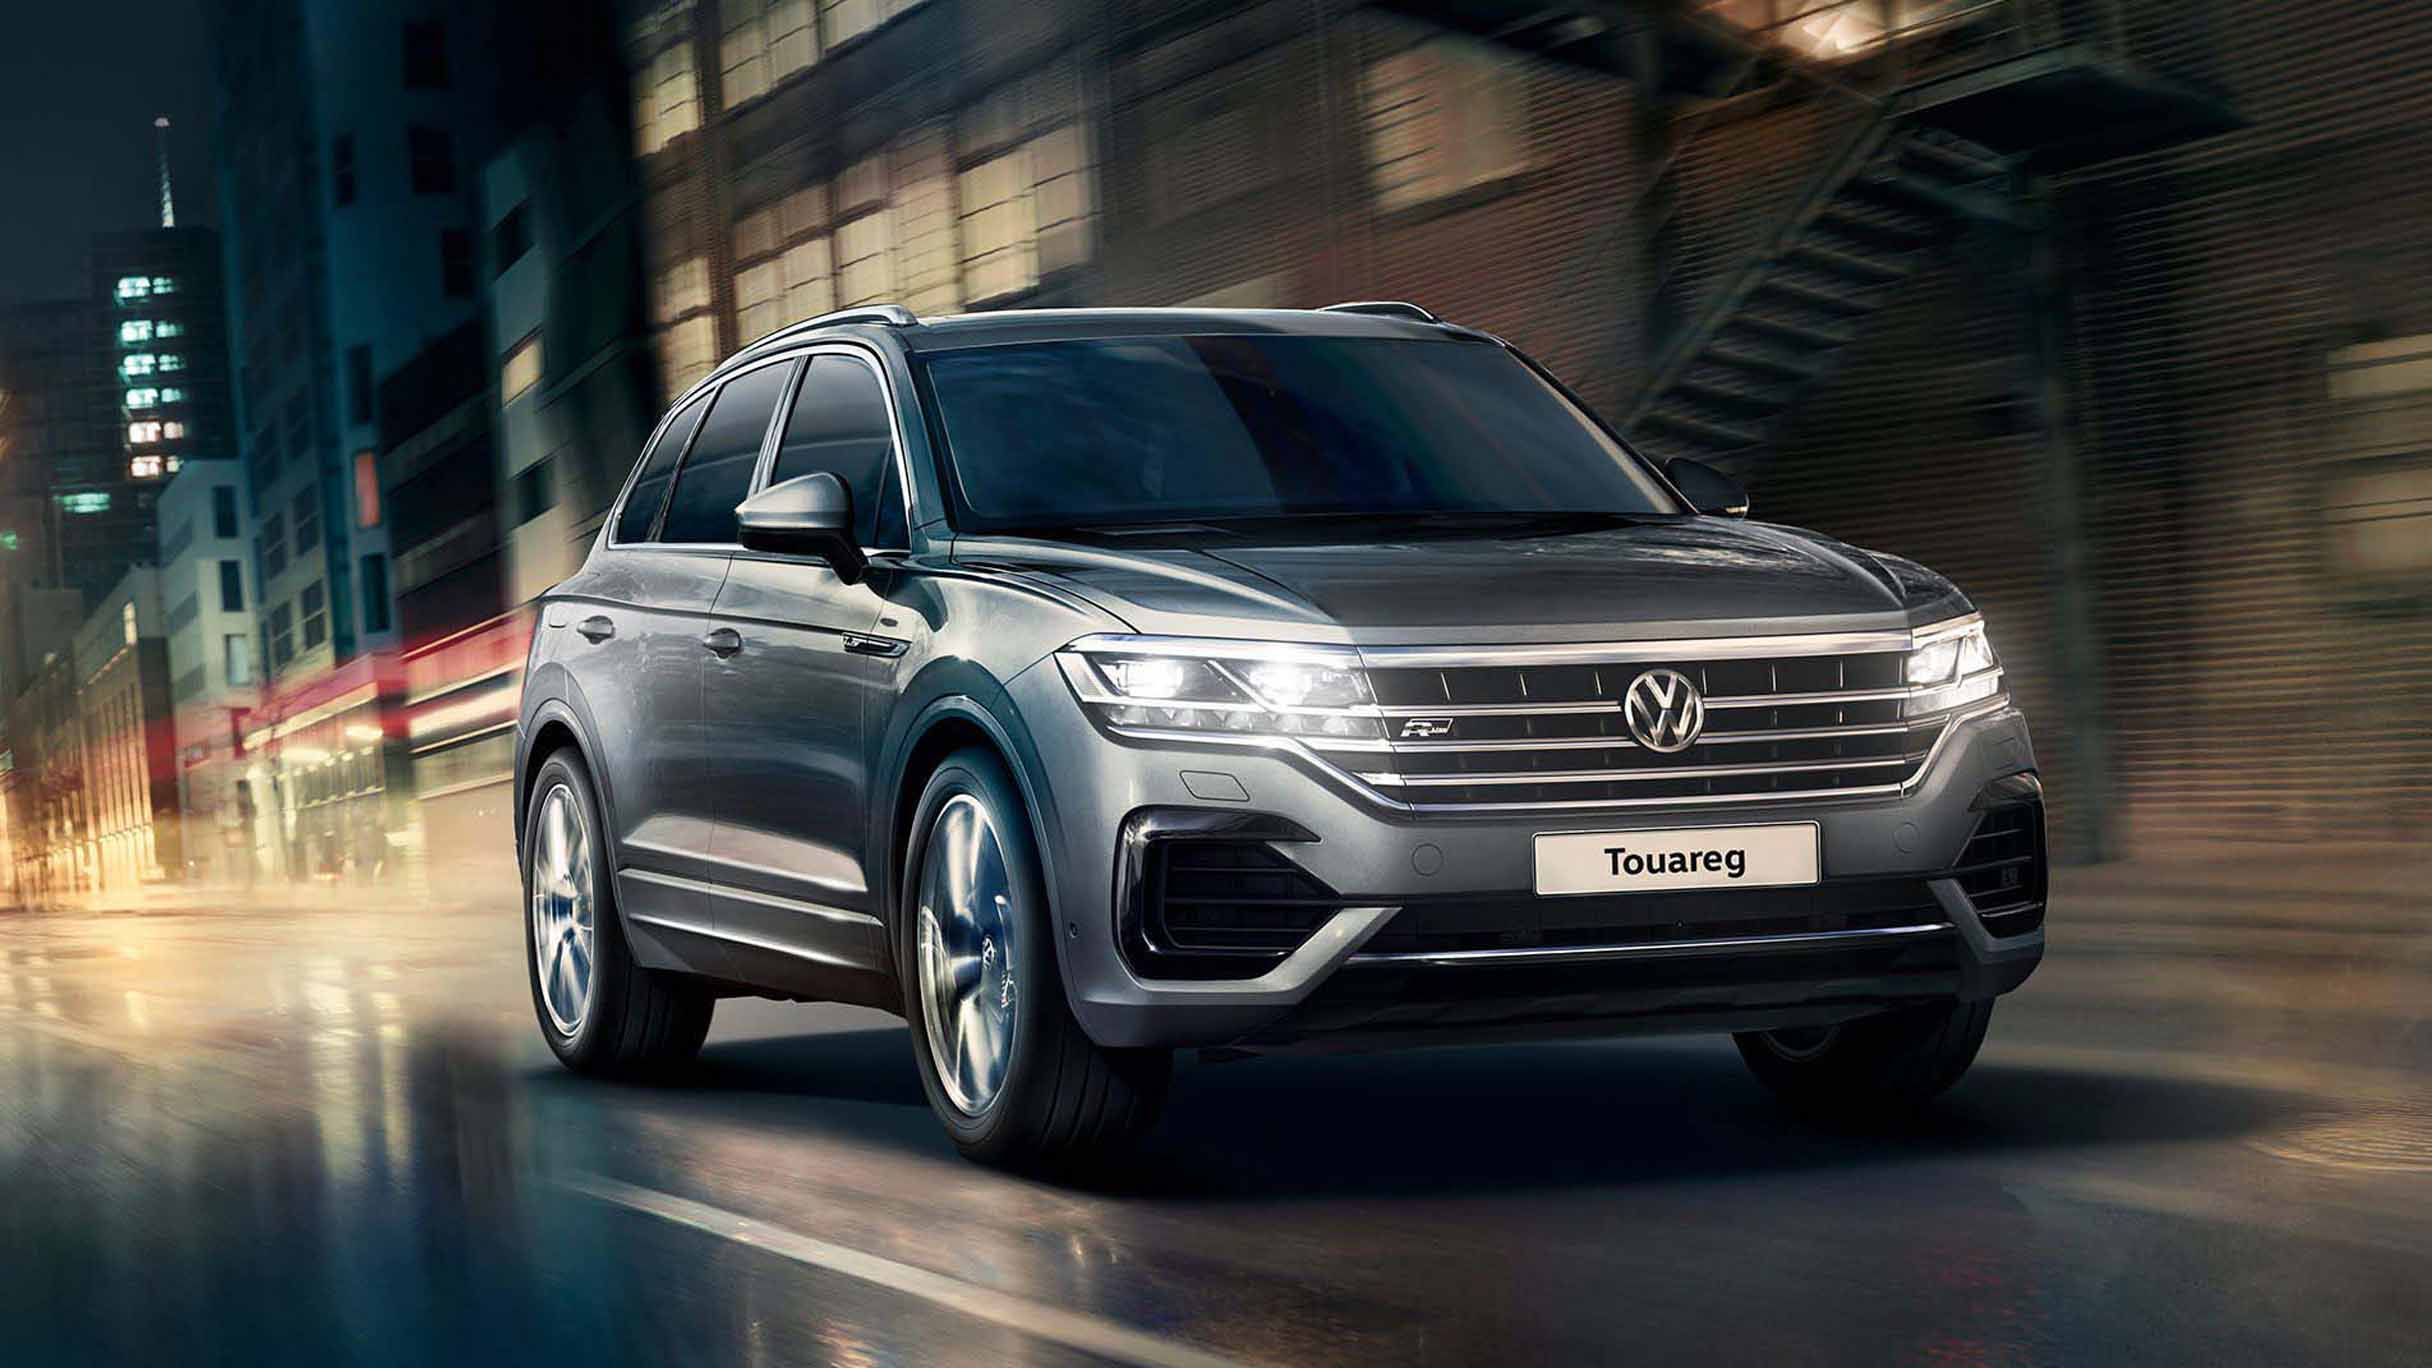 Volkswagen Touareg prices and specs